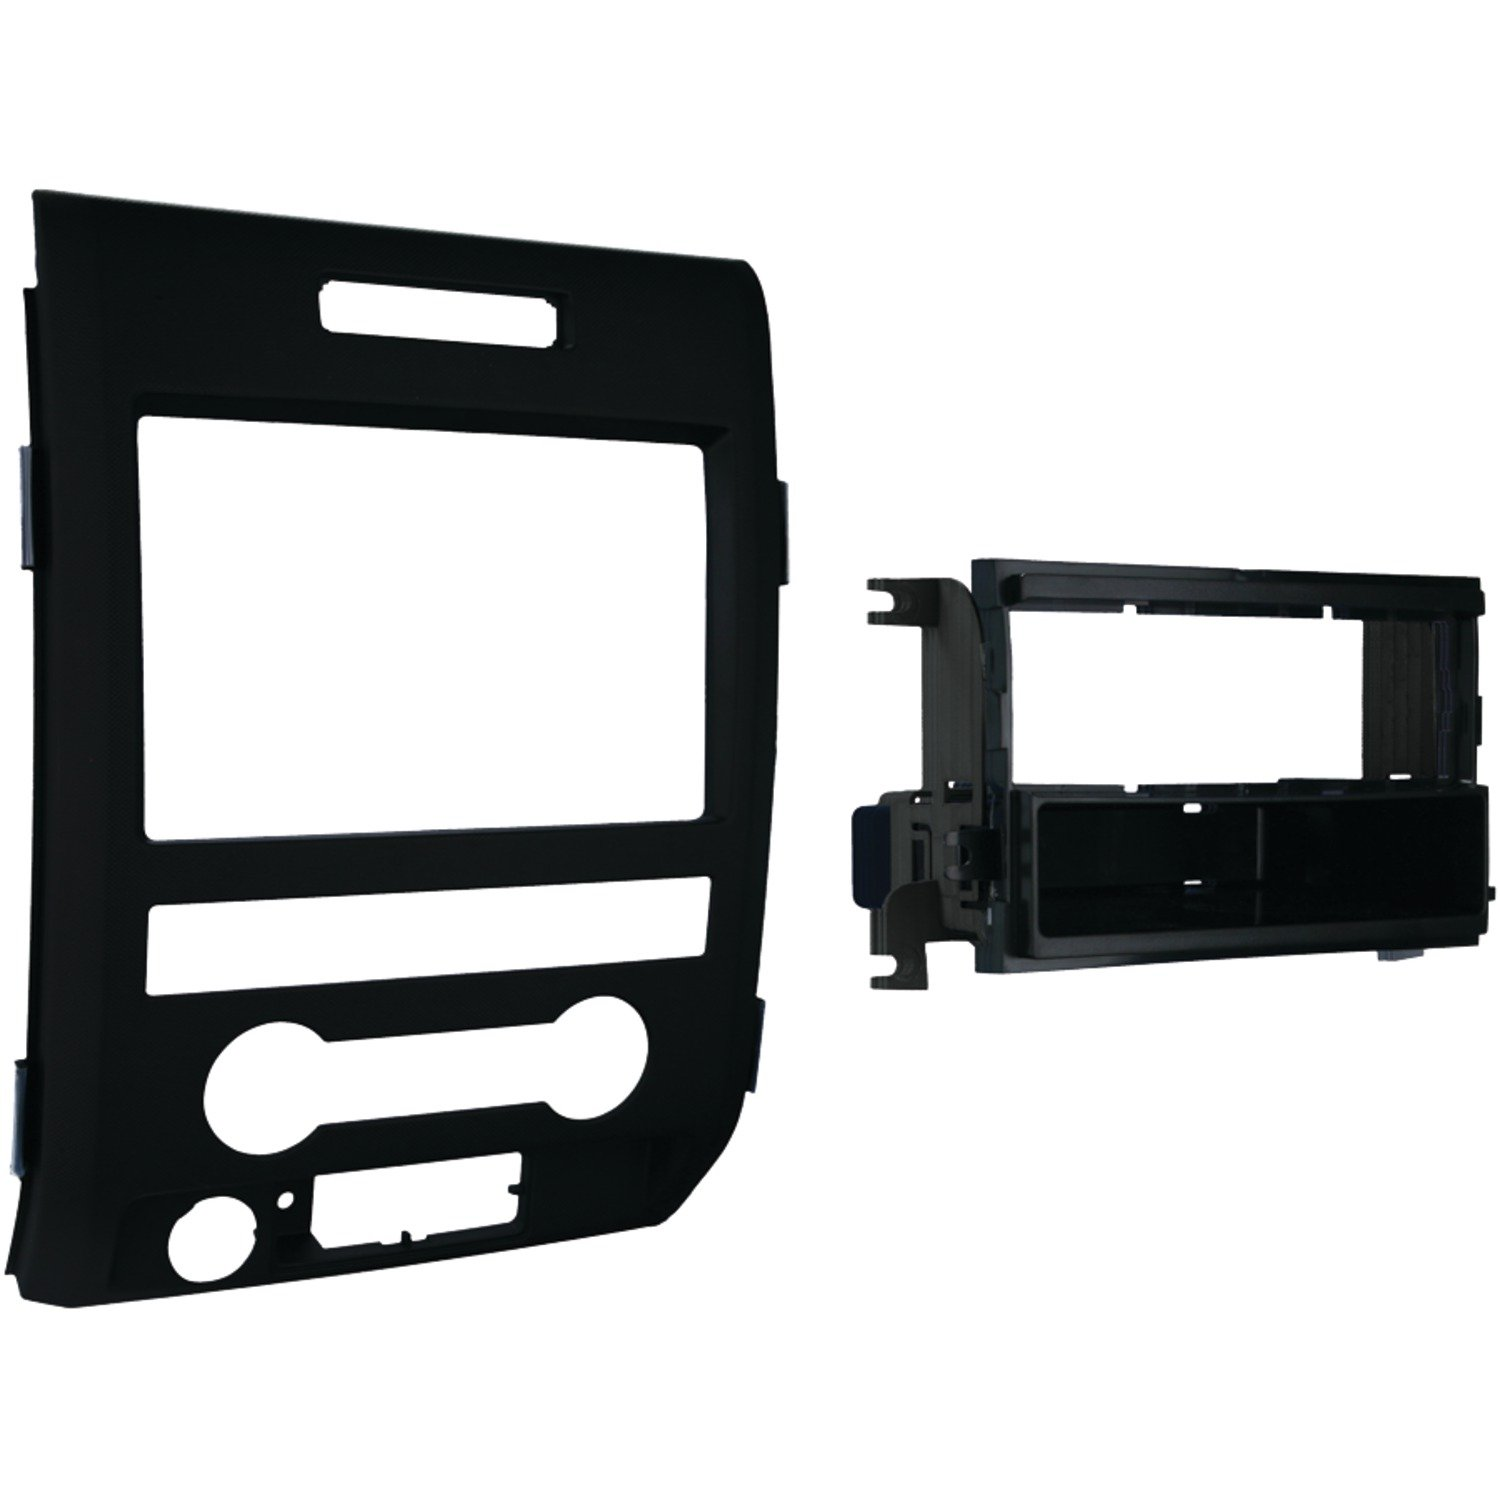 61EJfEsElrL._SL1500_ amazon com metra 99 5820b single din installation dash kit for Dash Kit for F150 at bakdesigns.co